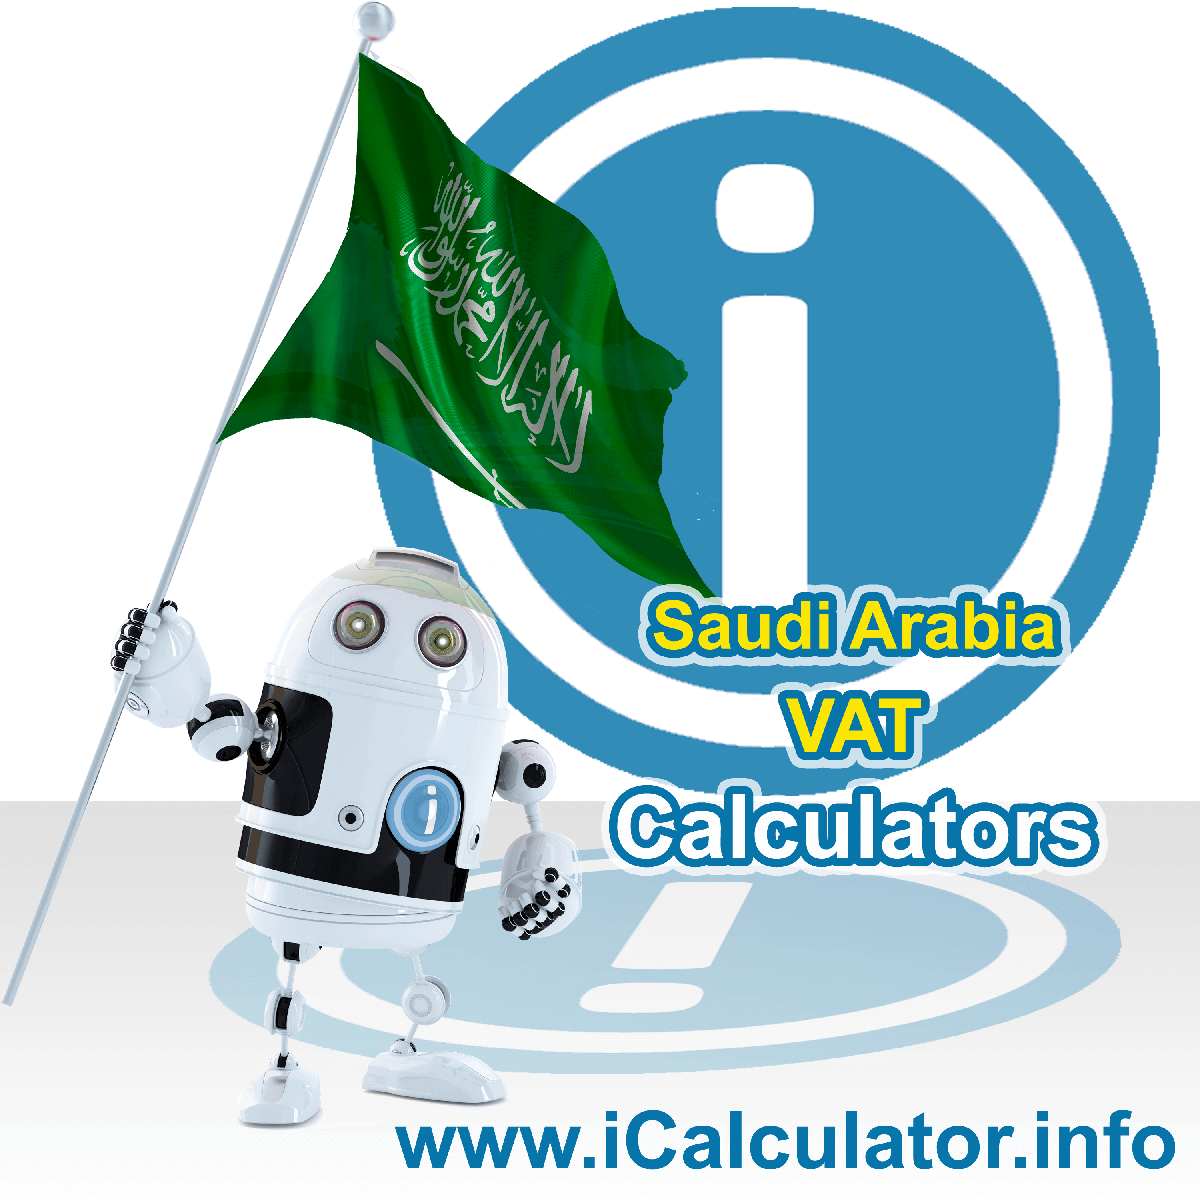 Saudi Arabia VAT Calculator. This image shows the Saudi Arabia flag and information relating to the VAT formula used for calculating Value Added Tax in Saudi Arabia using the Saudi Arabia VAT Calculator in 2020